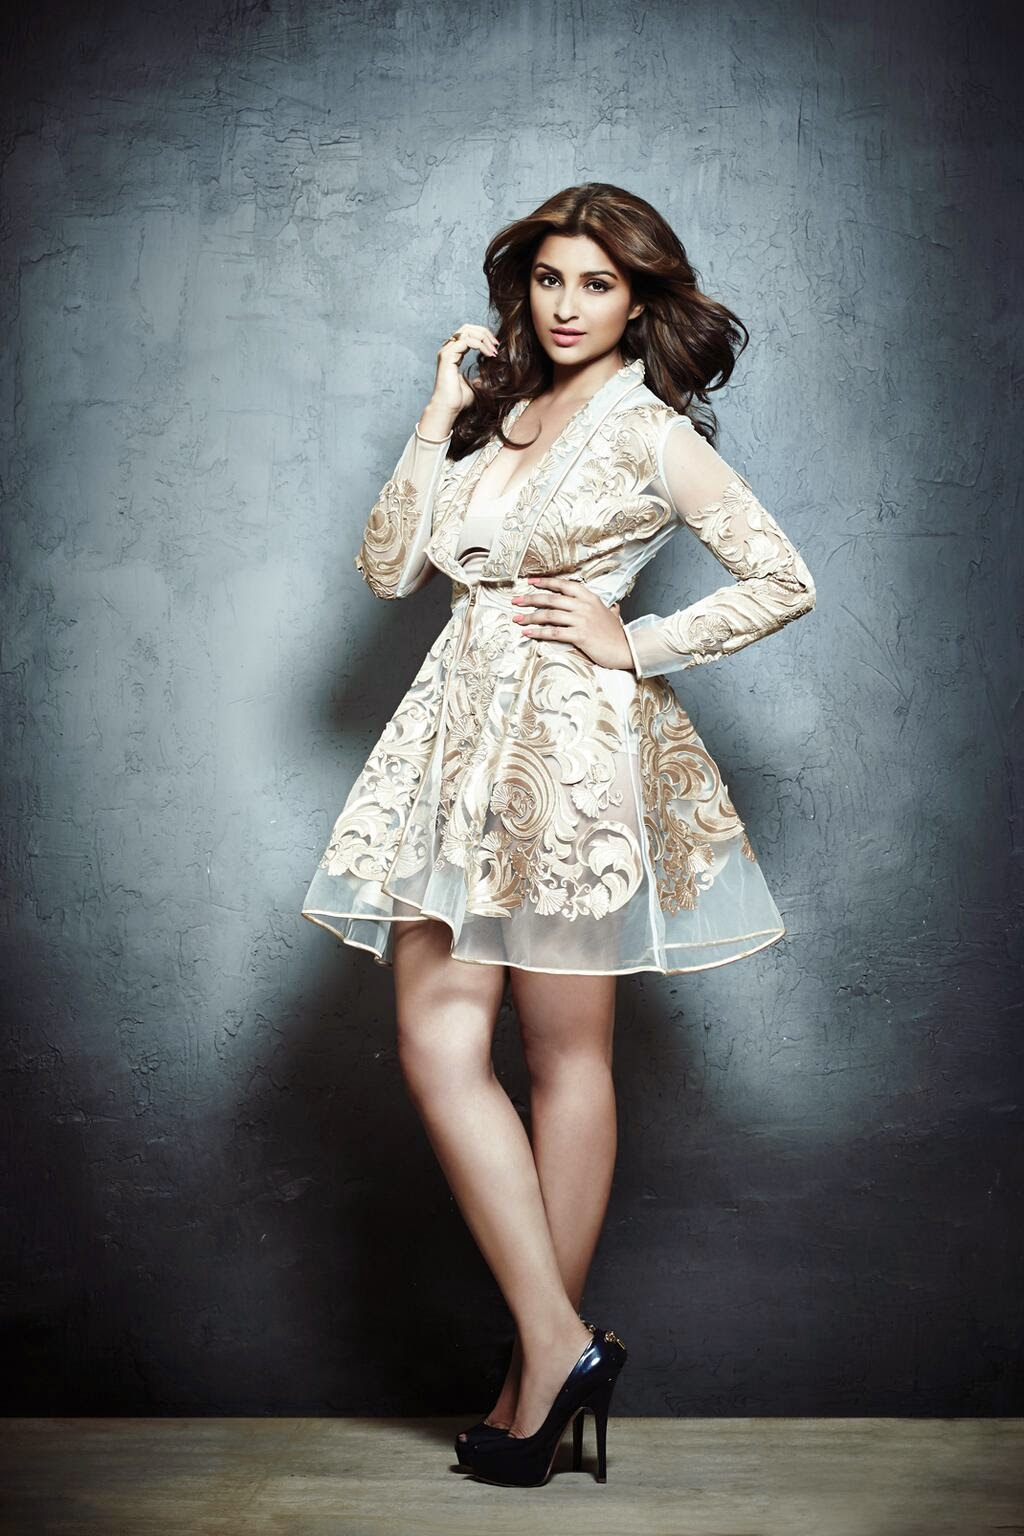 Parineeti Chopra is sexy mini-dress